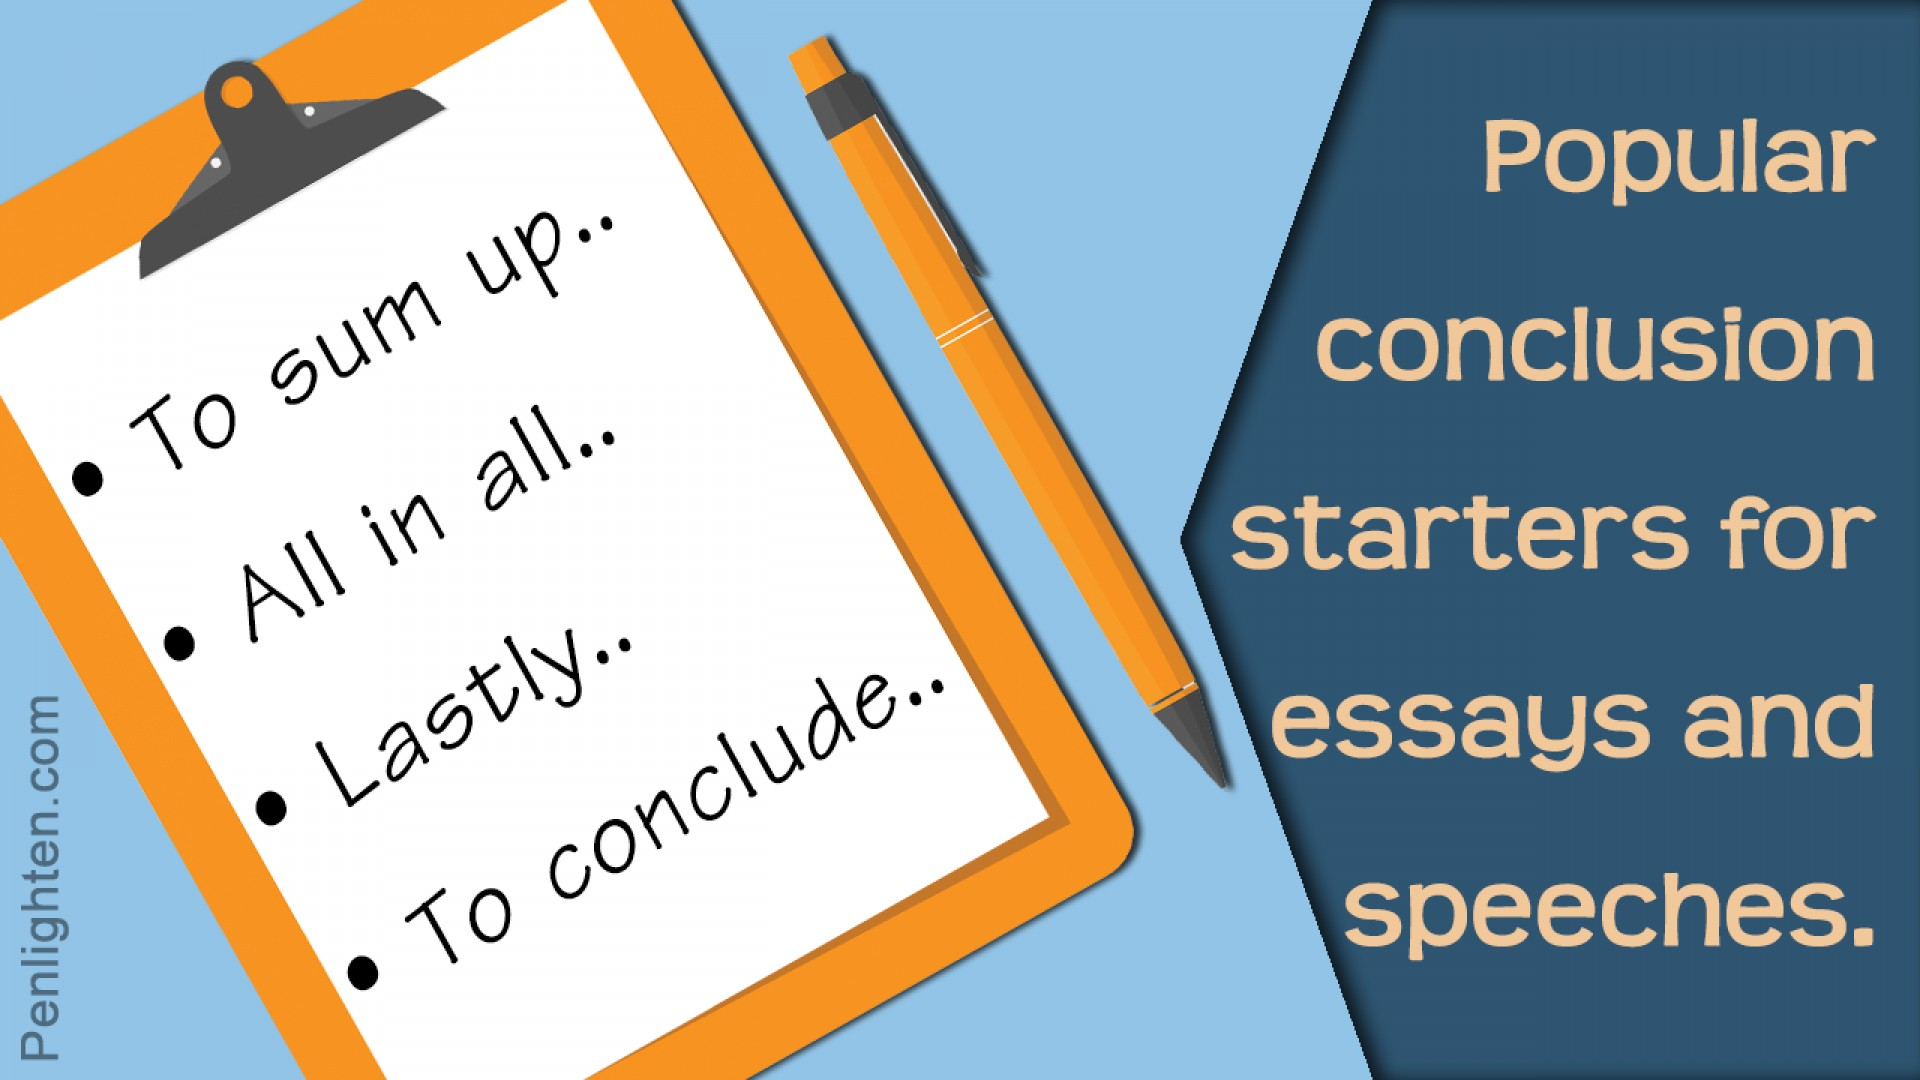 013 Essay Example How To Start An Unusual Conclusion A History Sentence For Write Expository 1920